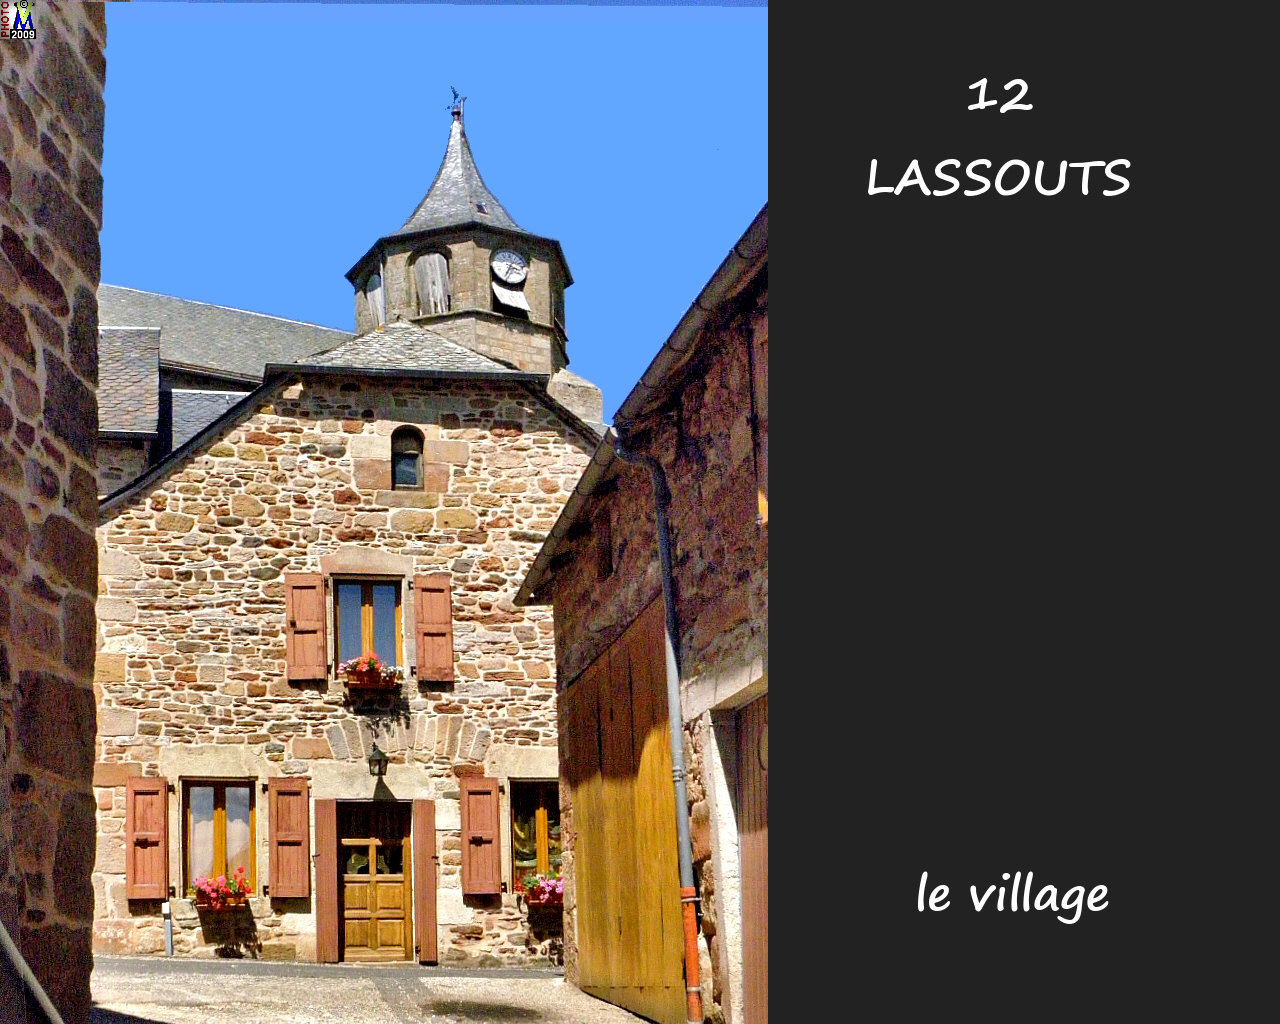 12LASSOUTS_village_100.jpg